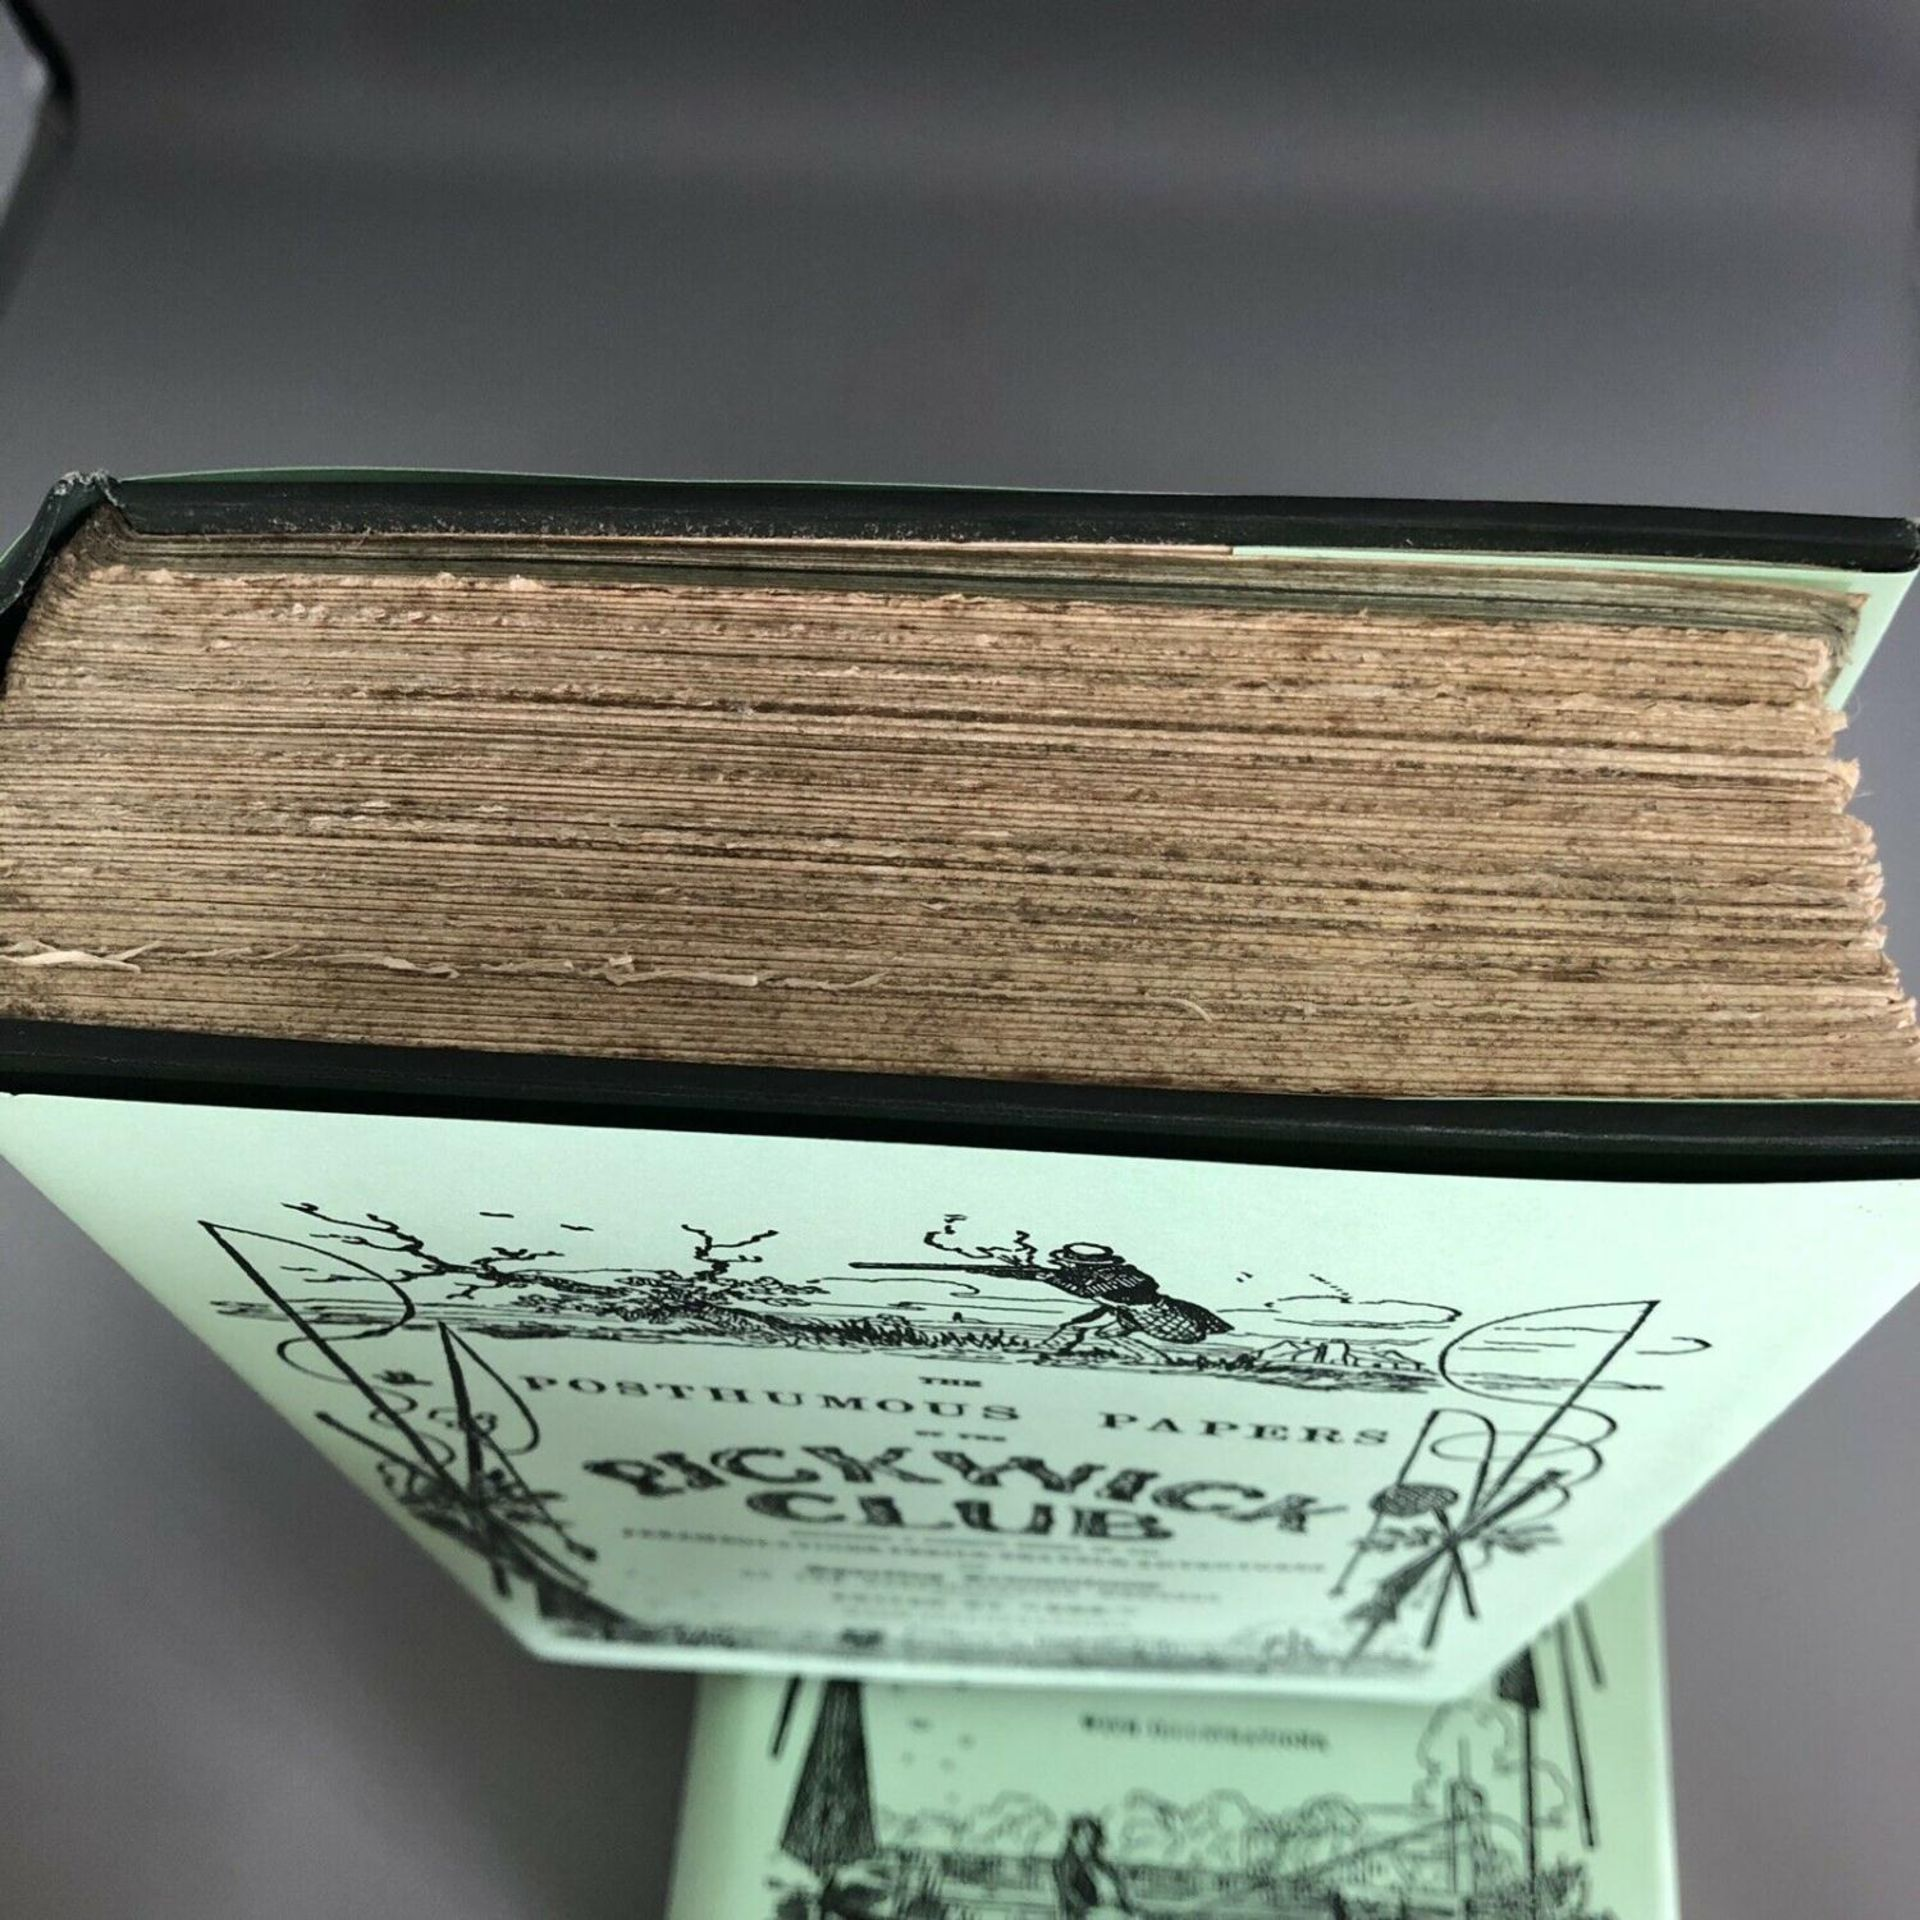 Lot 54 - Charles Dickens The Posthumous Papers of the Pickwick Club Volumes I & II Lombard Street Edition